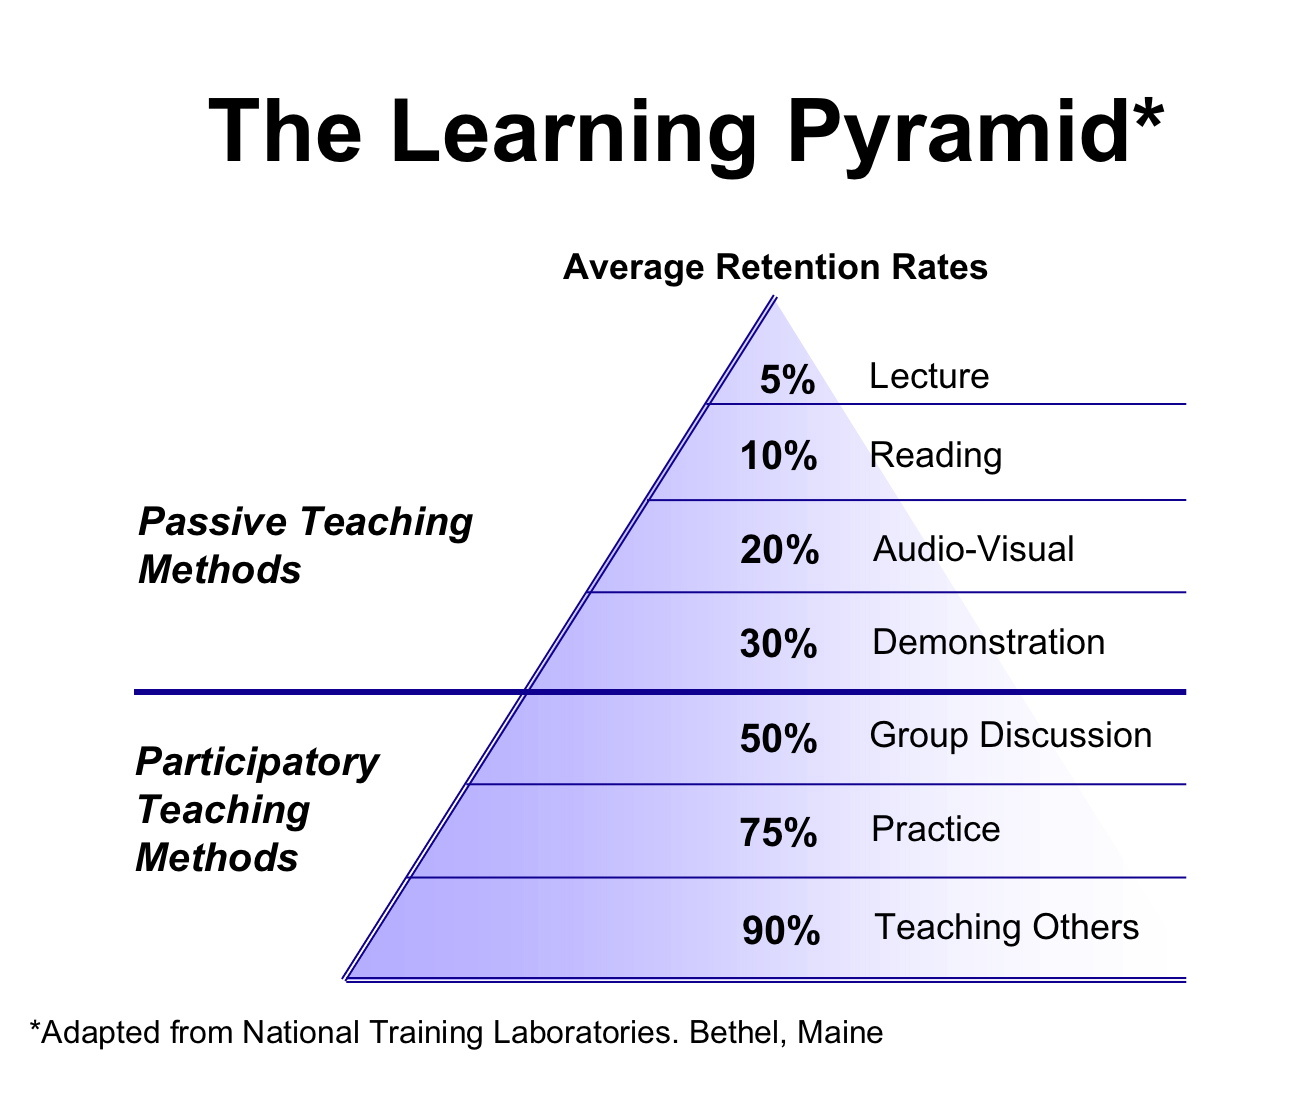 eLearning development - The Learning Pyramid